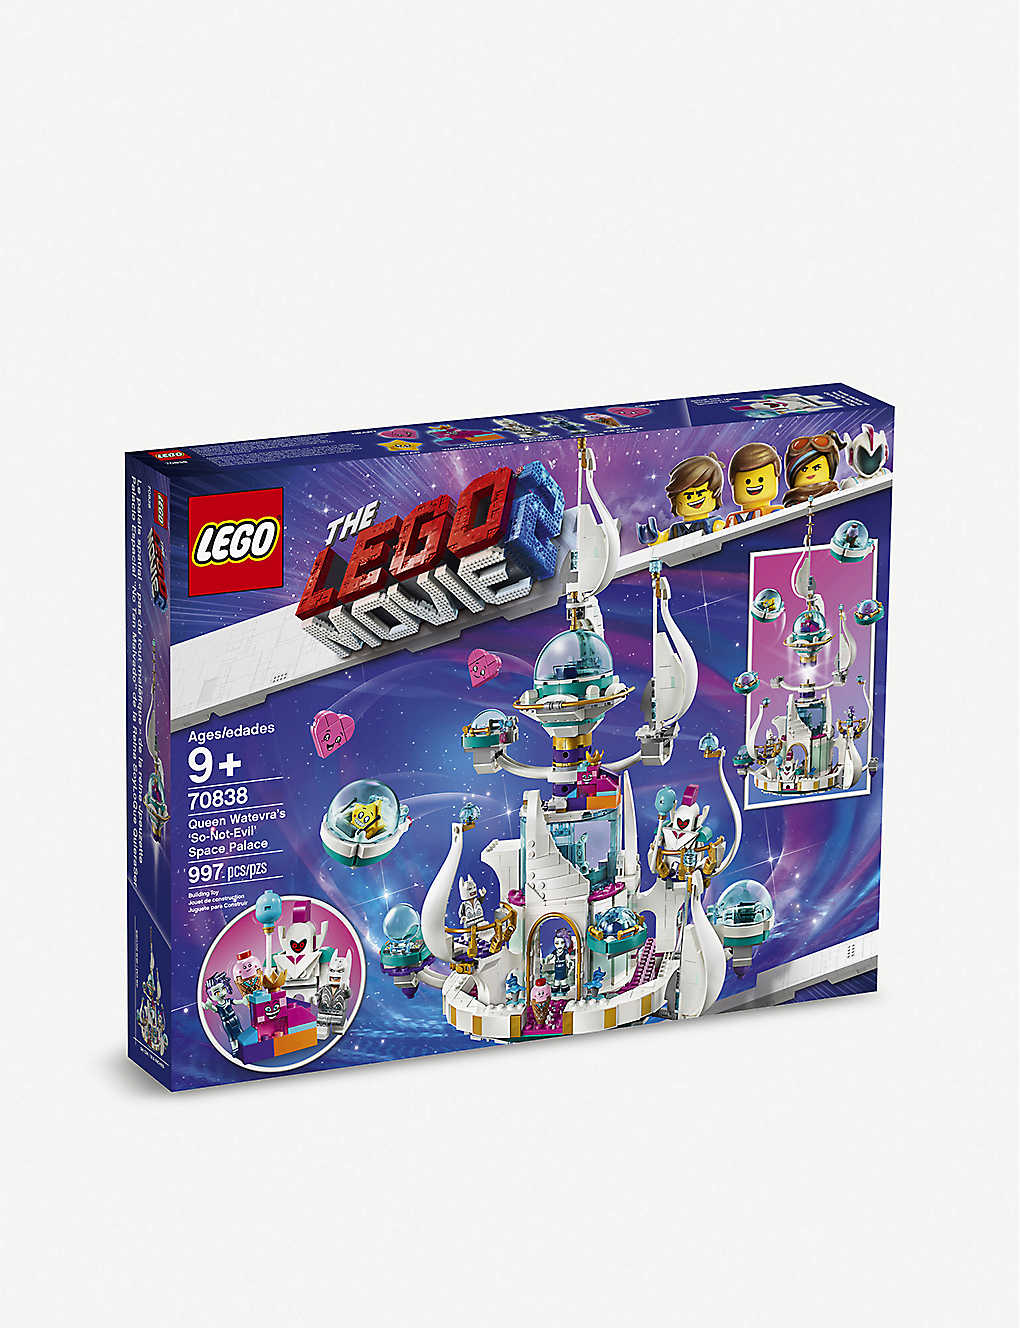 LEGO: LEGO® Queen Watevra's 'So-Not-Evil' Space Palace set